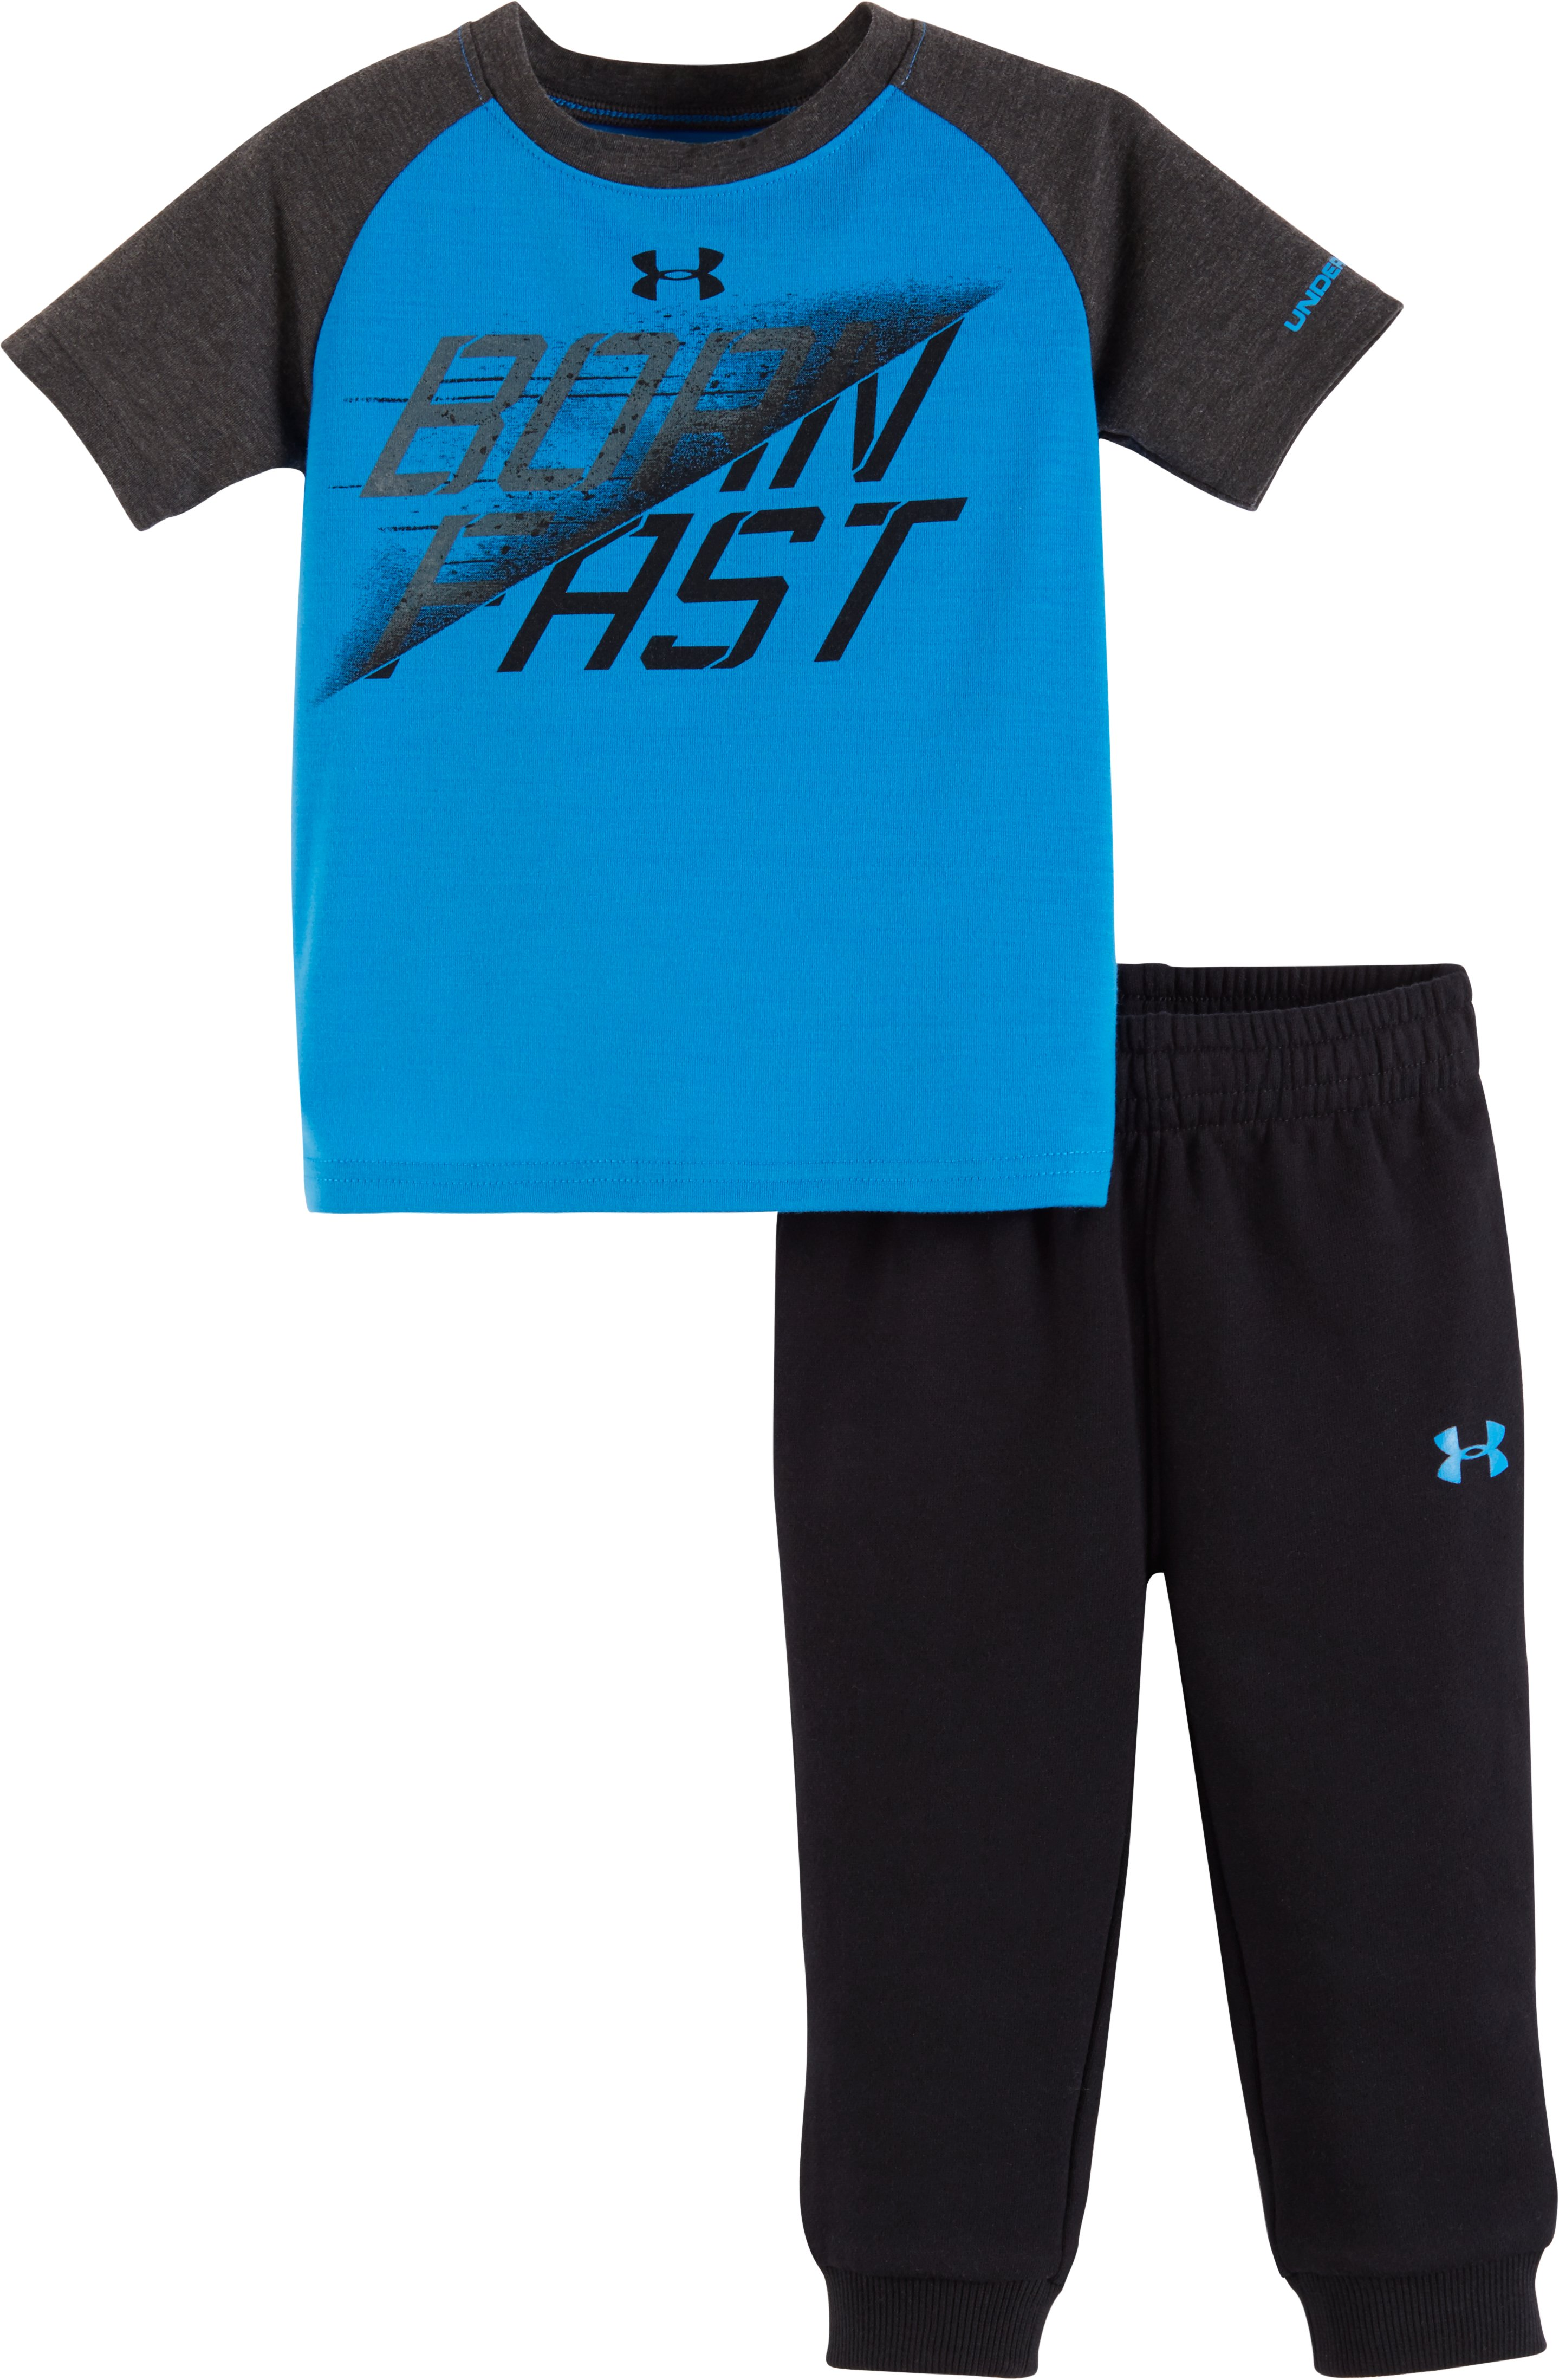 Boys' Infant UA Born Fast Set, BRILLIANT BLUE, zoomed image